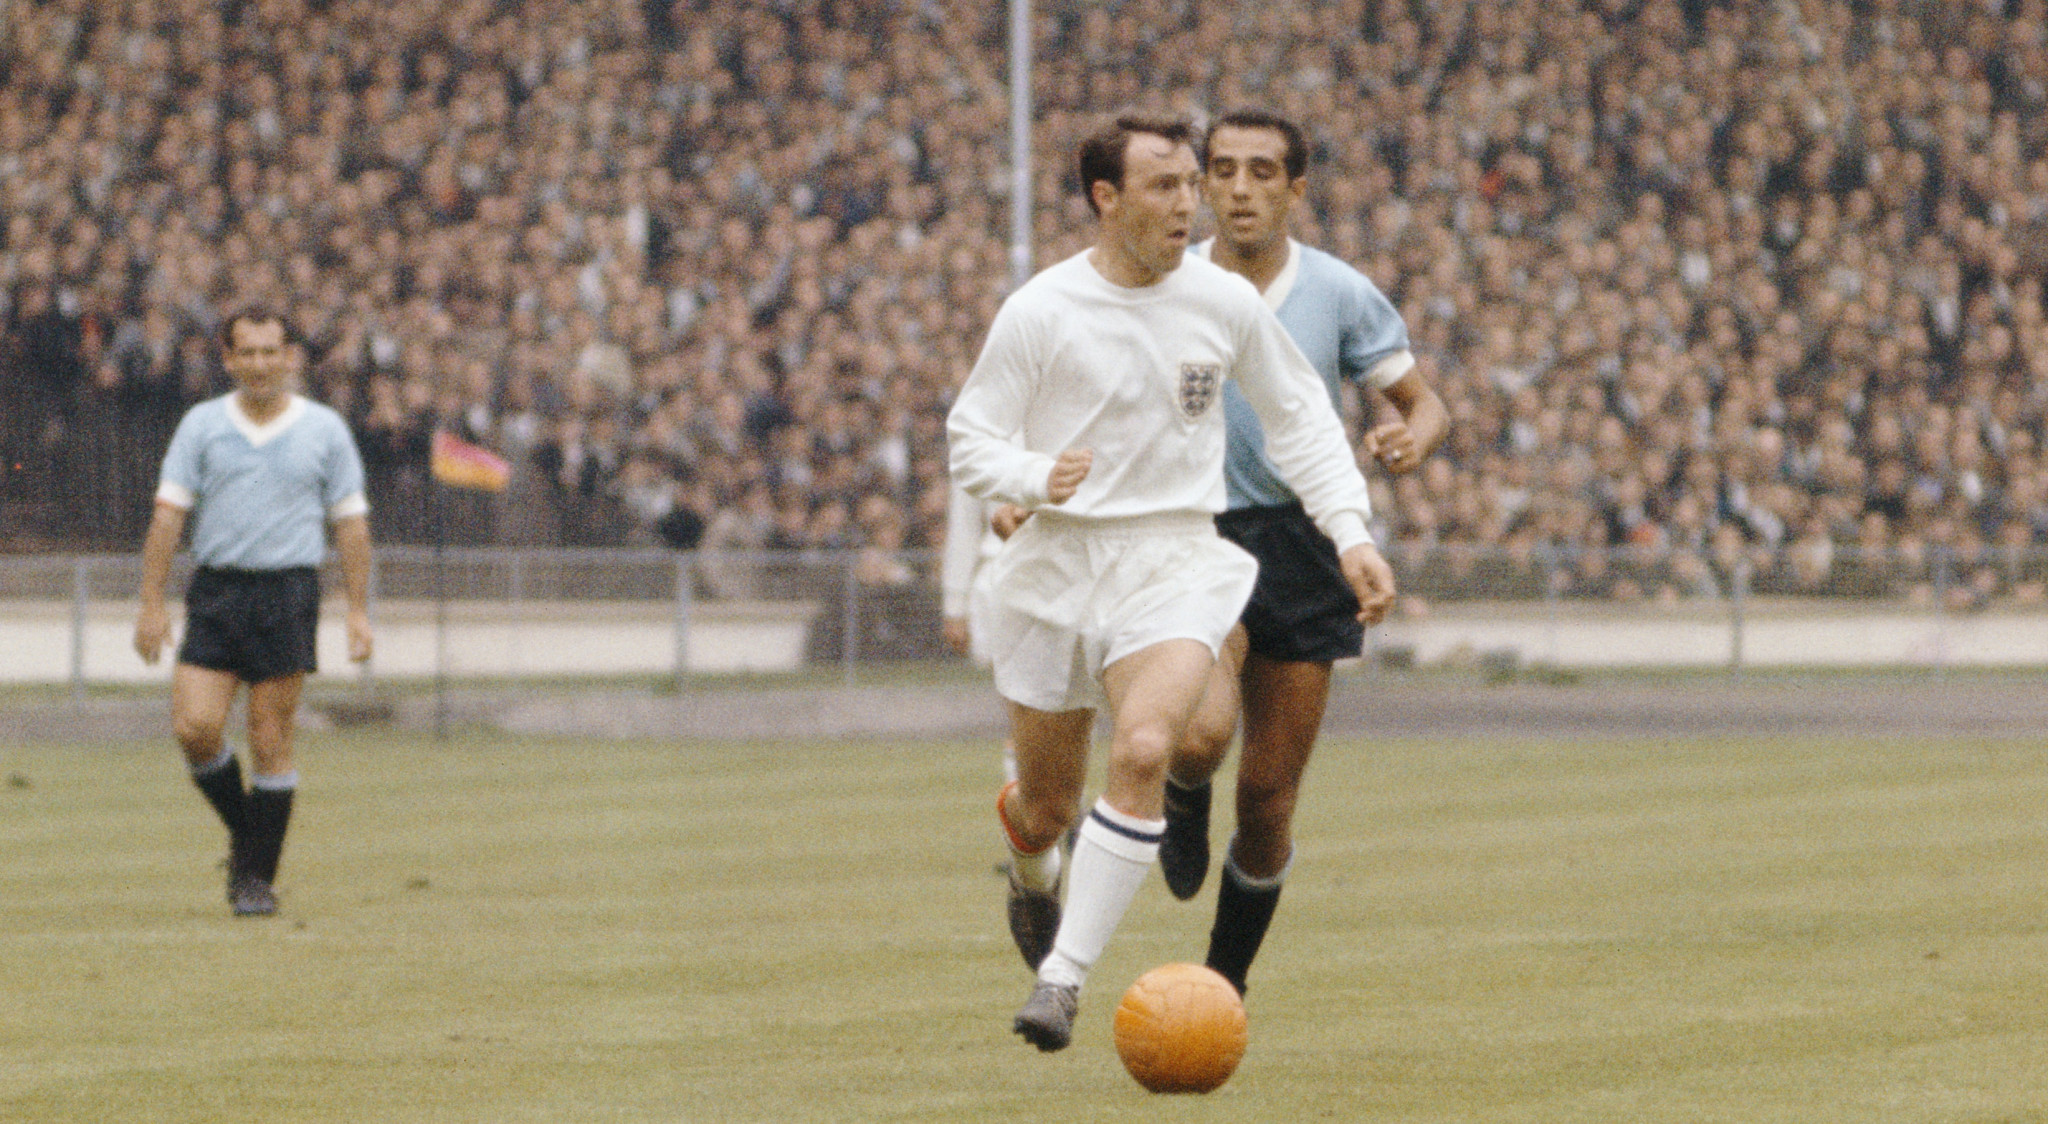 Former England World Cup winner Greaves dies aged 81